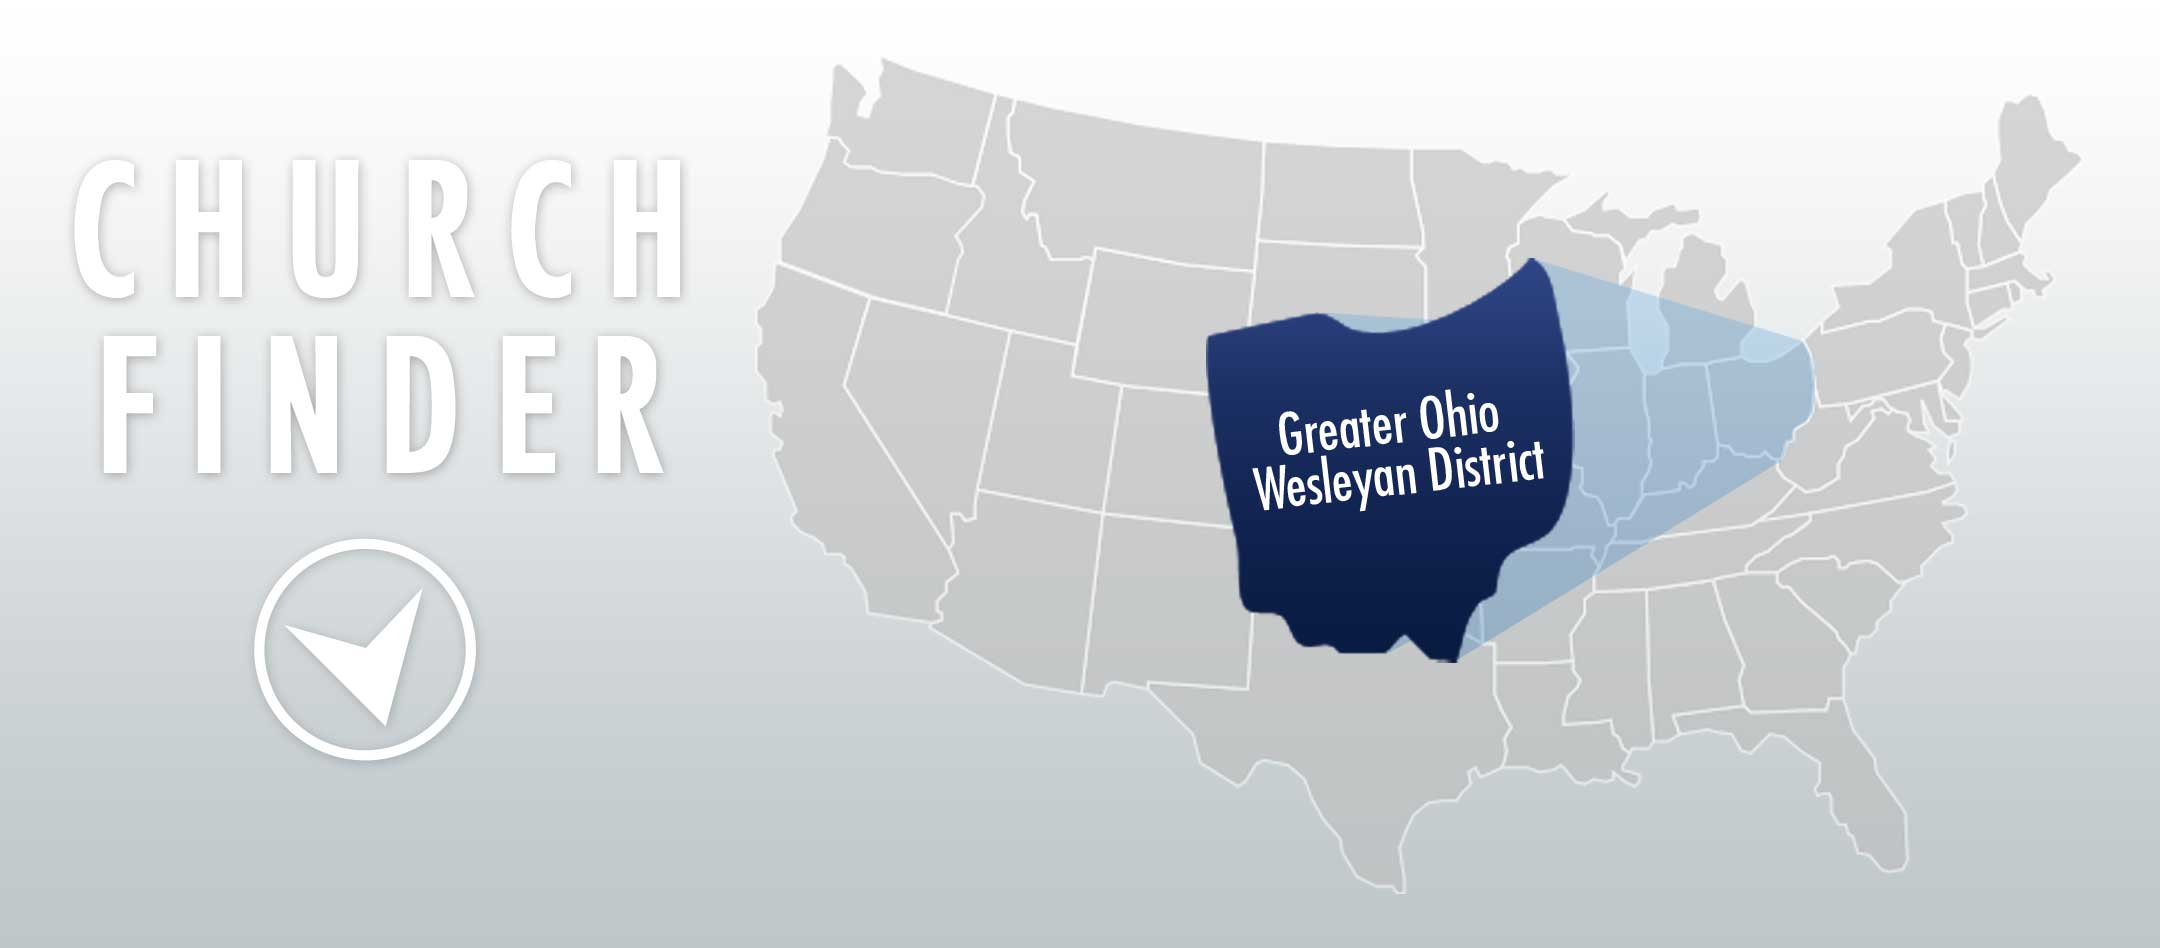 The Greater Ohio Wesleyan District